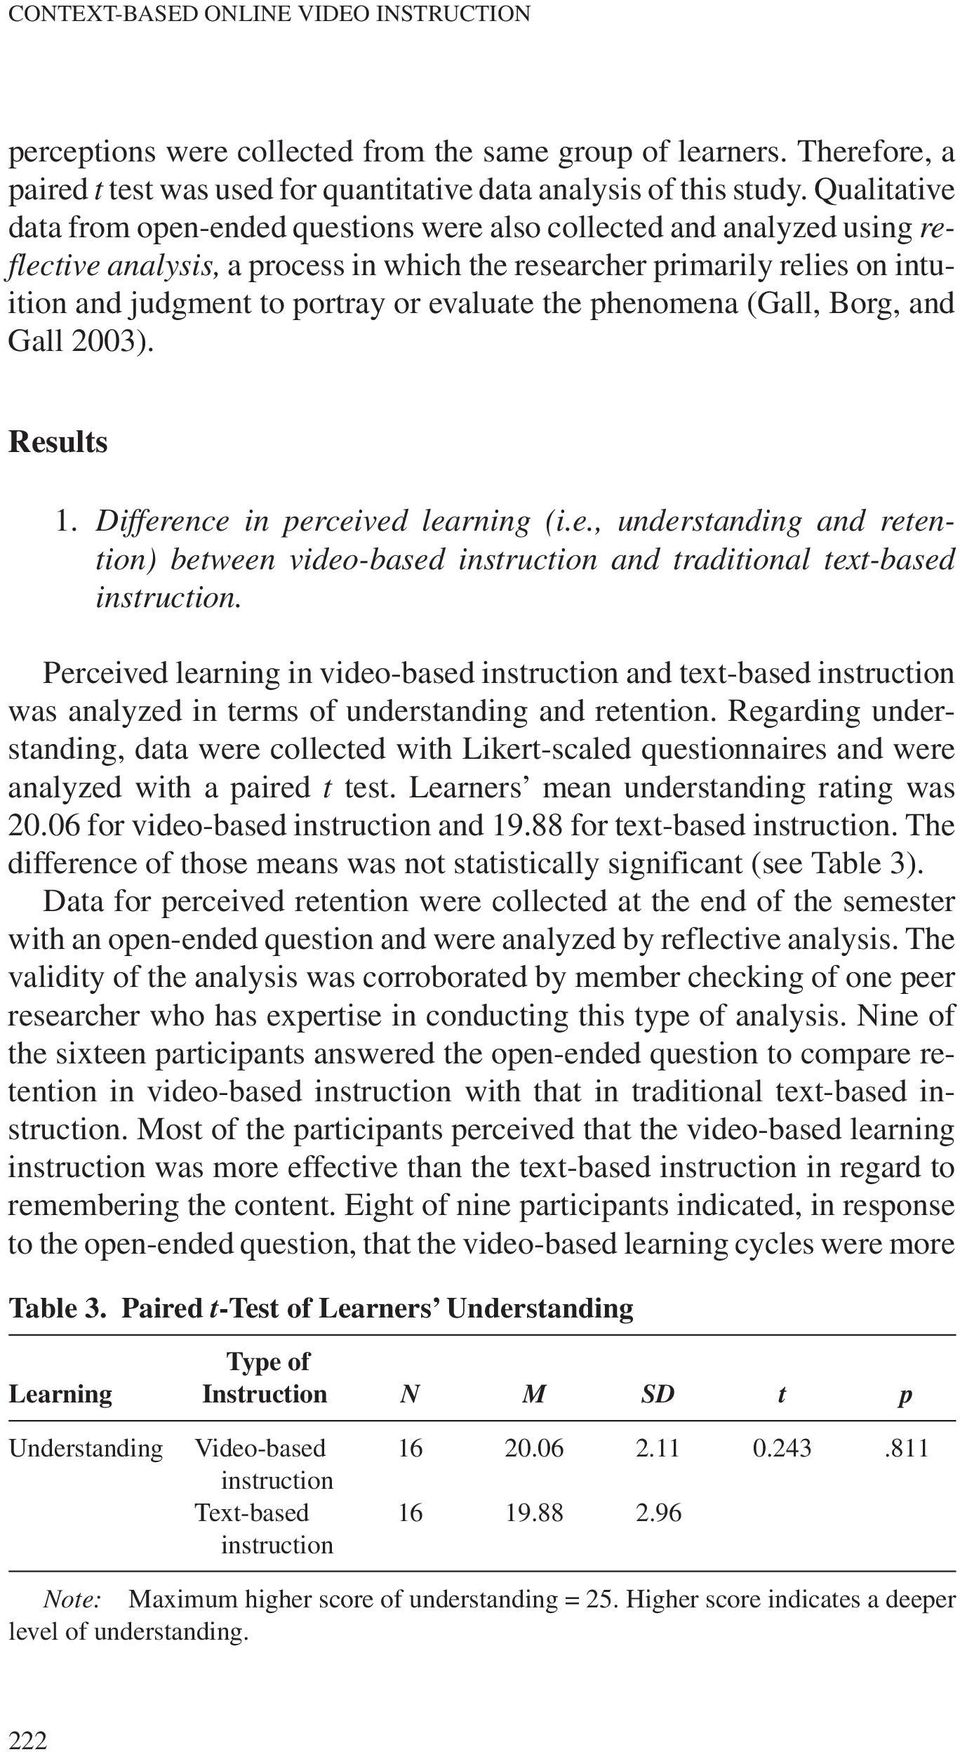 evaluate the phenomena (Gall, Borg, and Gall 2003). Results 1. Difference in perceived learning (i.e., understanding and retention) between video-based and traditional text-based.